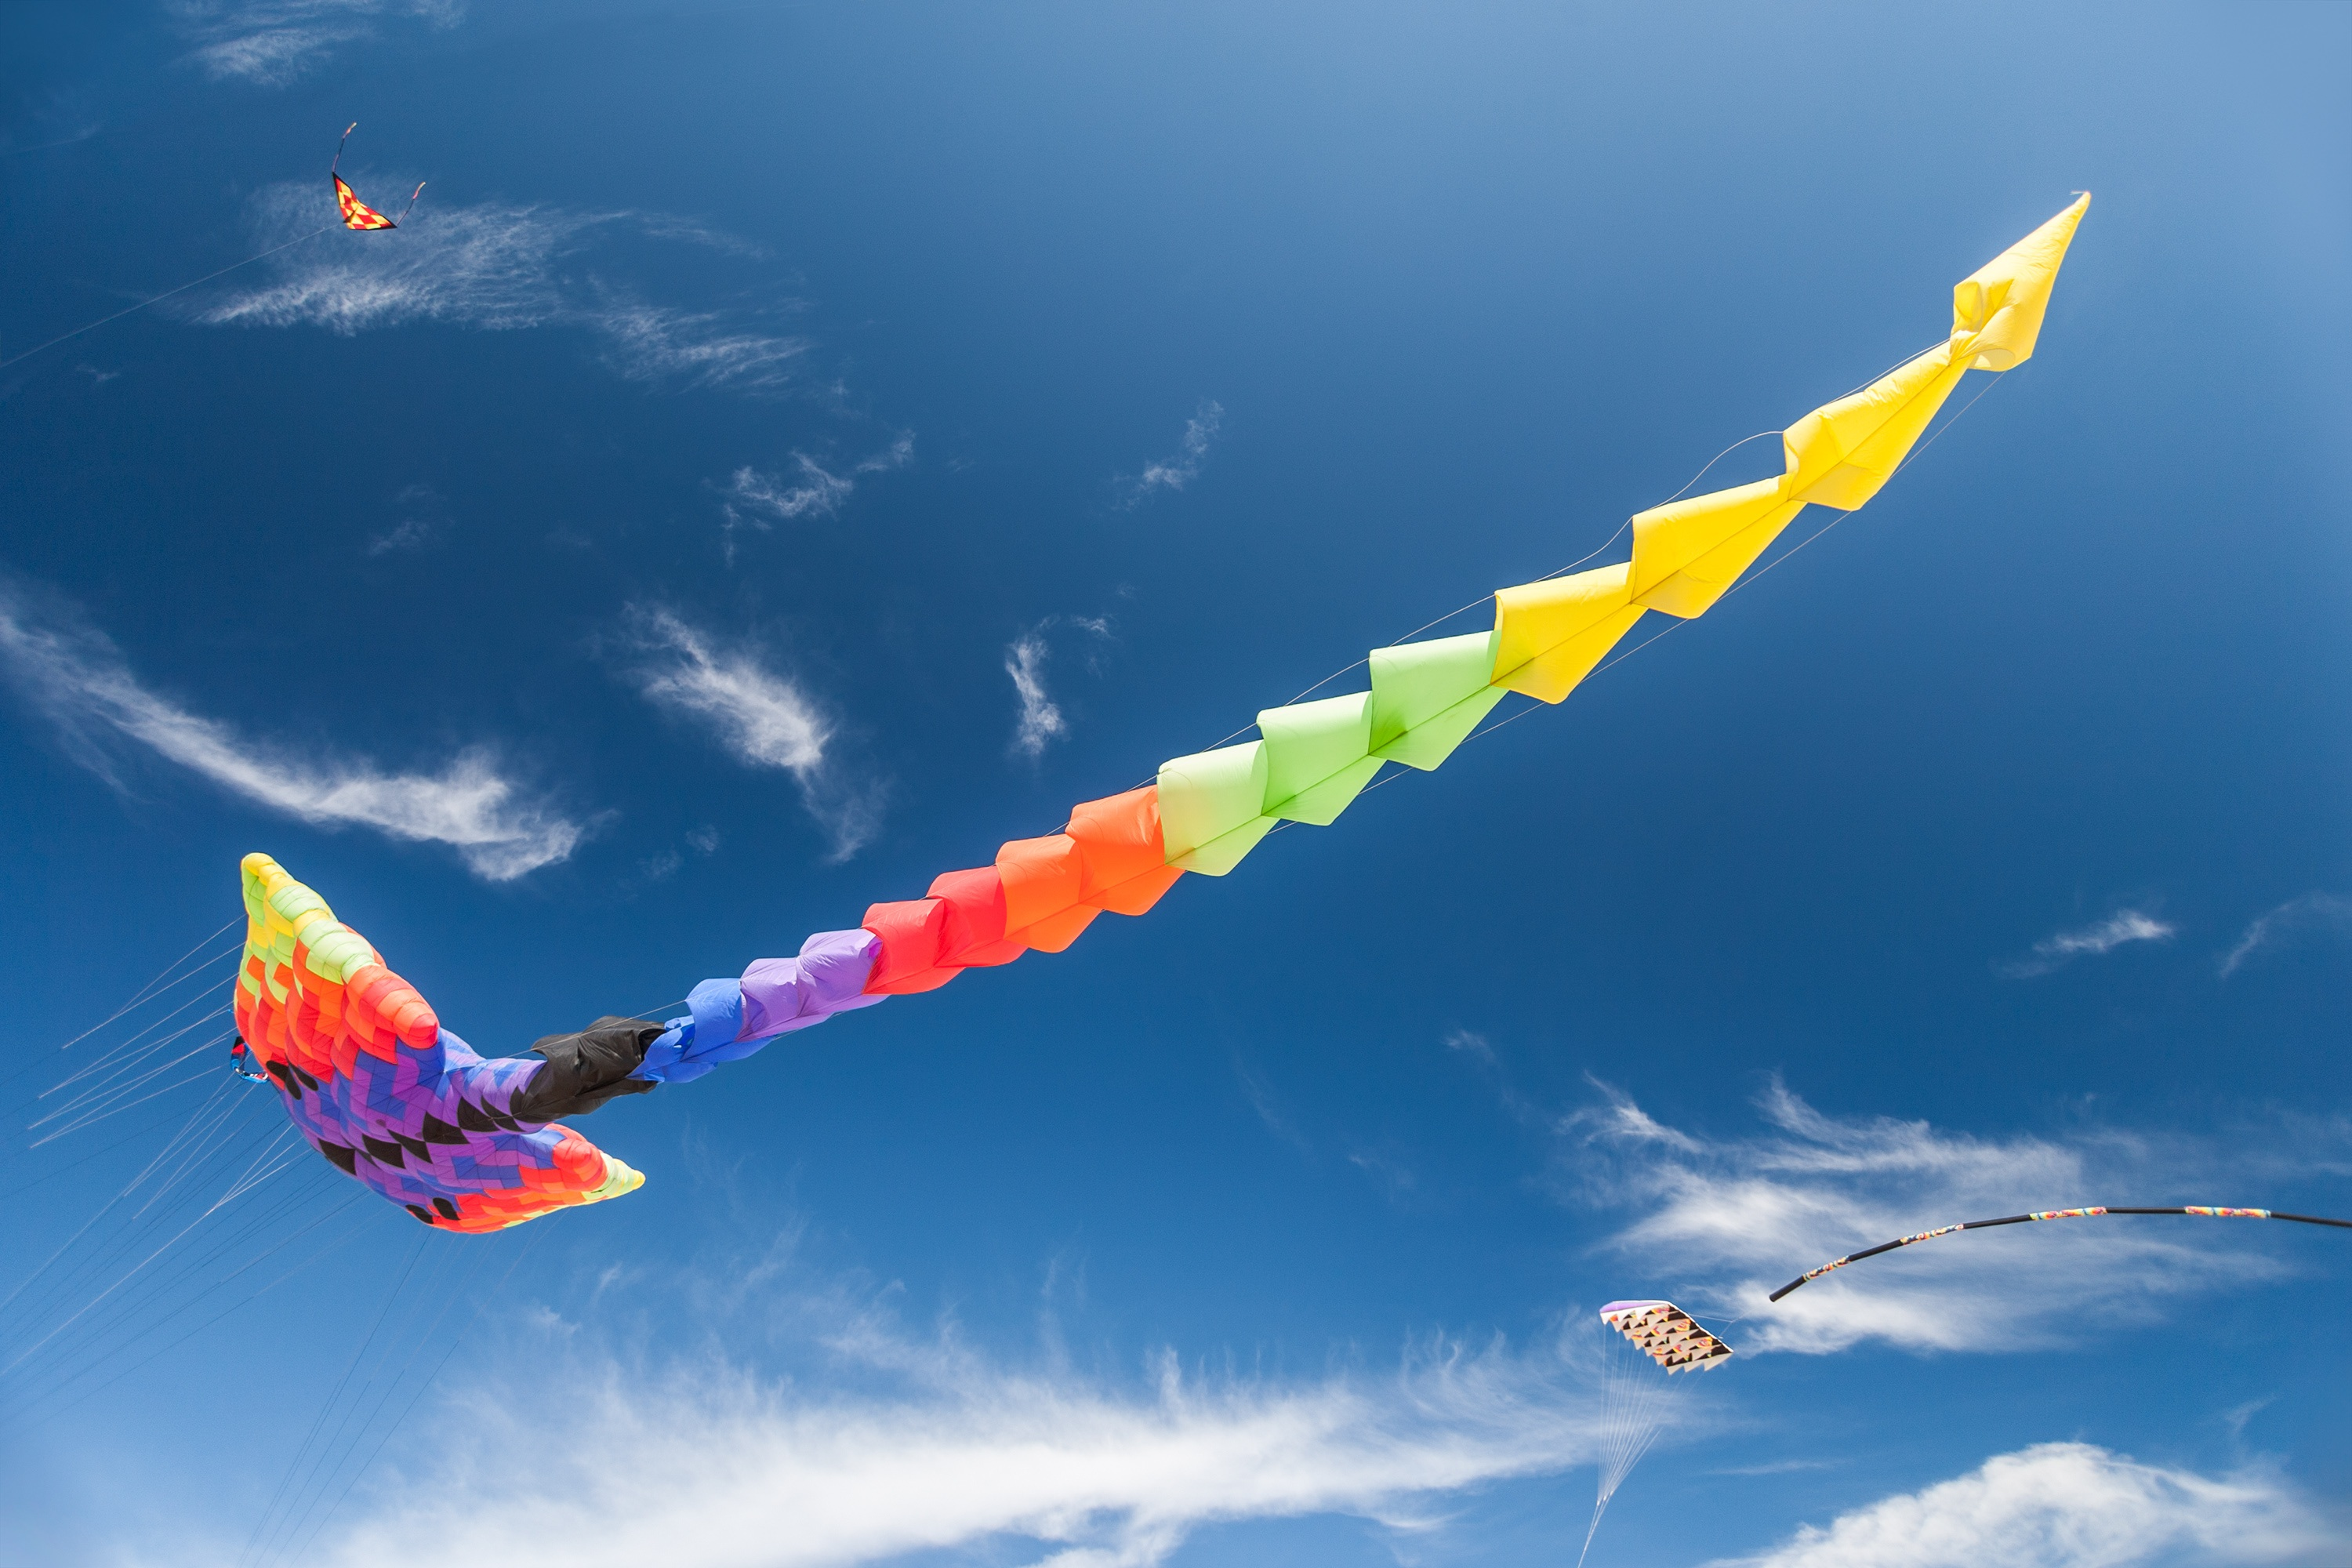 Kites flying in the sky HD Wallpaper Background Image 3000x2000